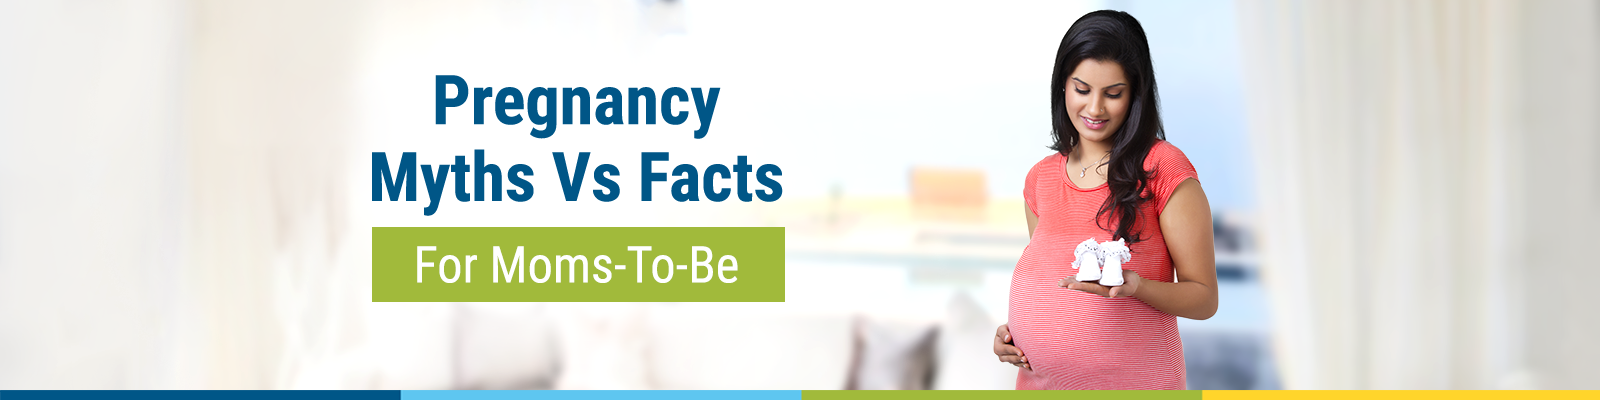 Pregnancy Myths Vs. Facts For Moms-To-Be